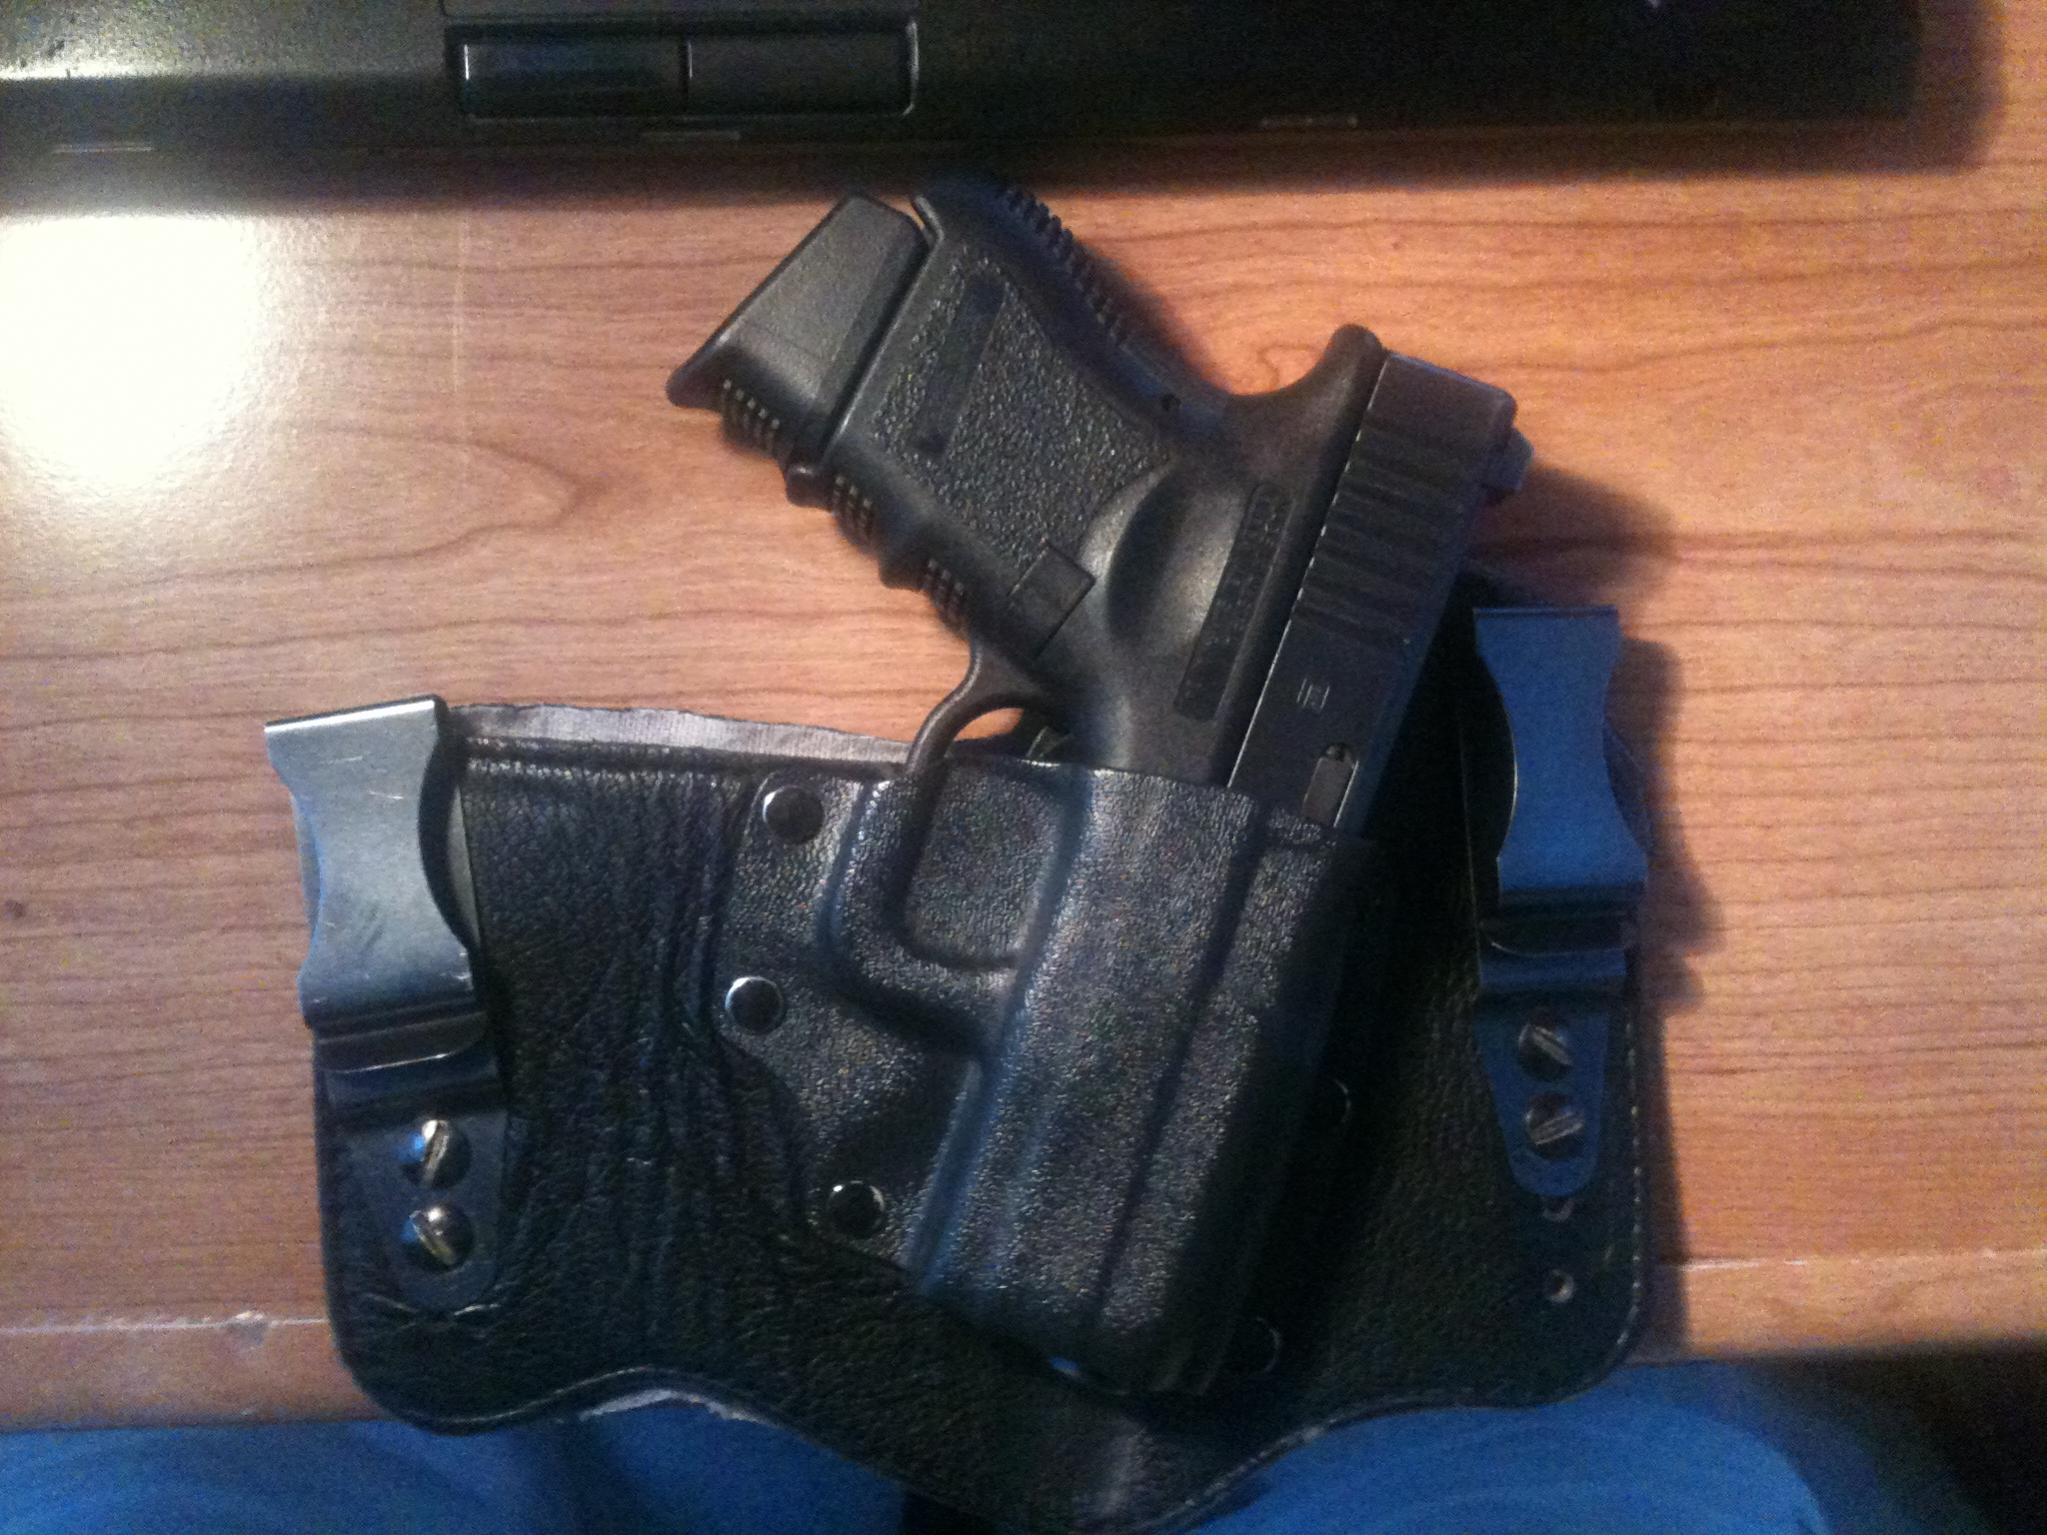 Making a Leather/Kydex Hybrid work with another gun-img_0064-1-.jpg